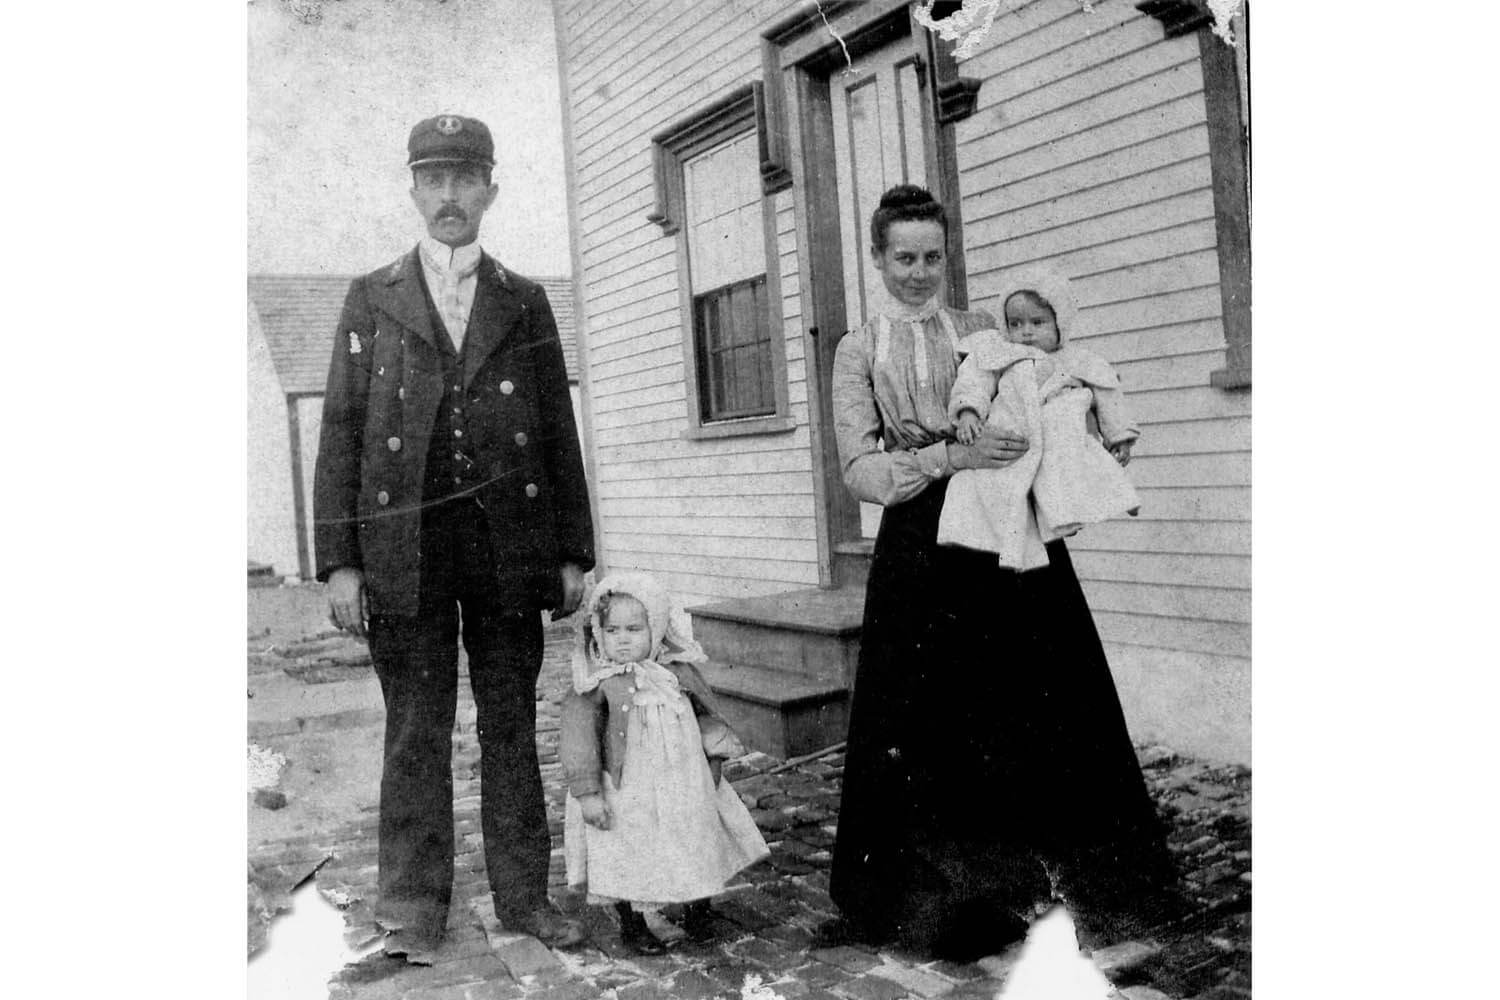 Third assistant keeper William Merrill Reed and his wife Dora and daughters Alice and Louise 1904.